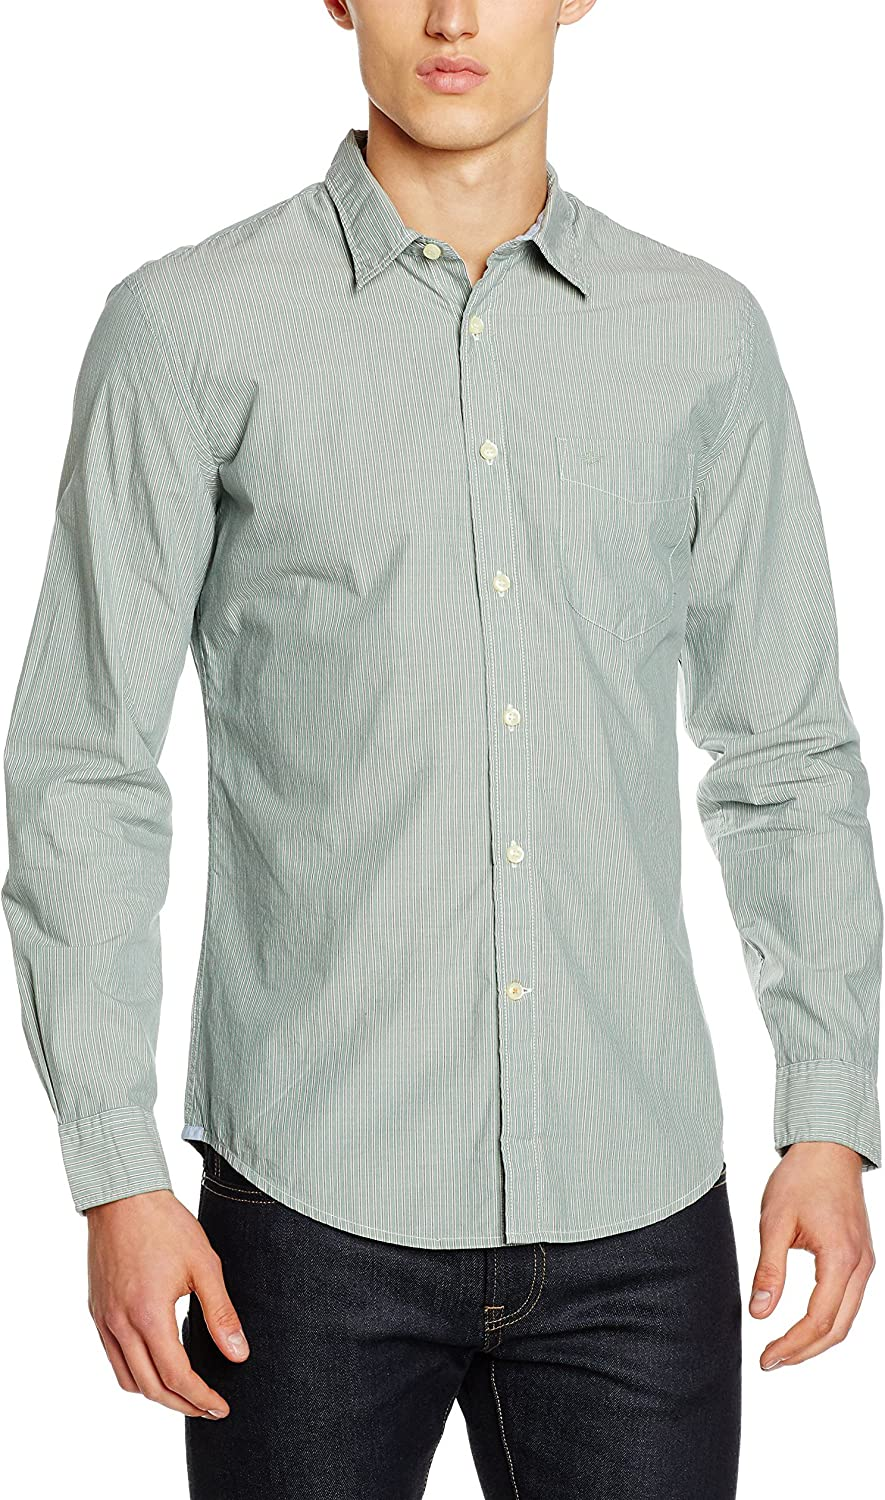 Dockers Laundered Fitted, Camisa Hombre, Verde (Rocco Worn Green ...